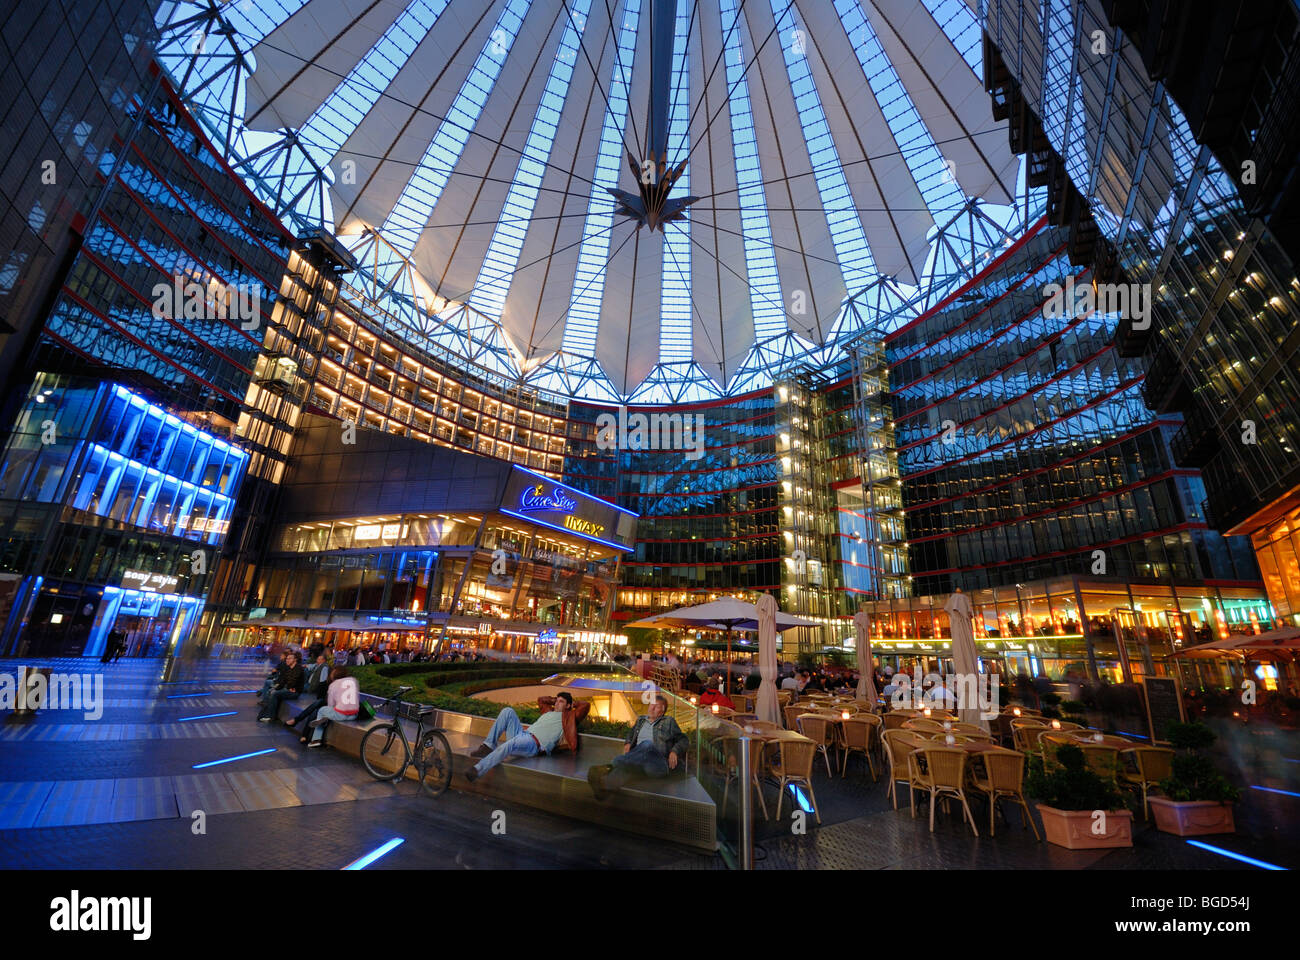 under the roof of sony center potsdamer platz nightlife stock photo royalty free image. Black Bedroom Furniture Sets. Home Design Ideas